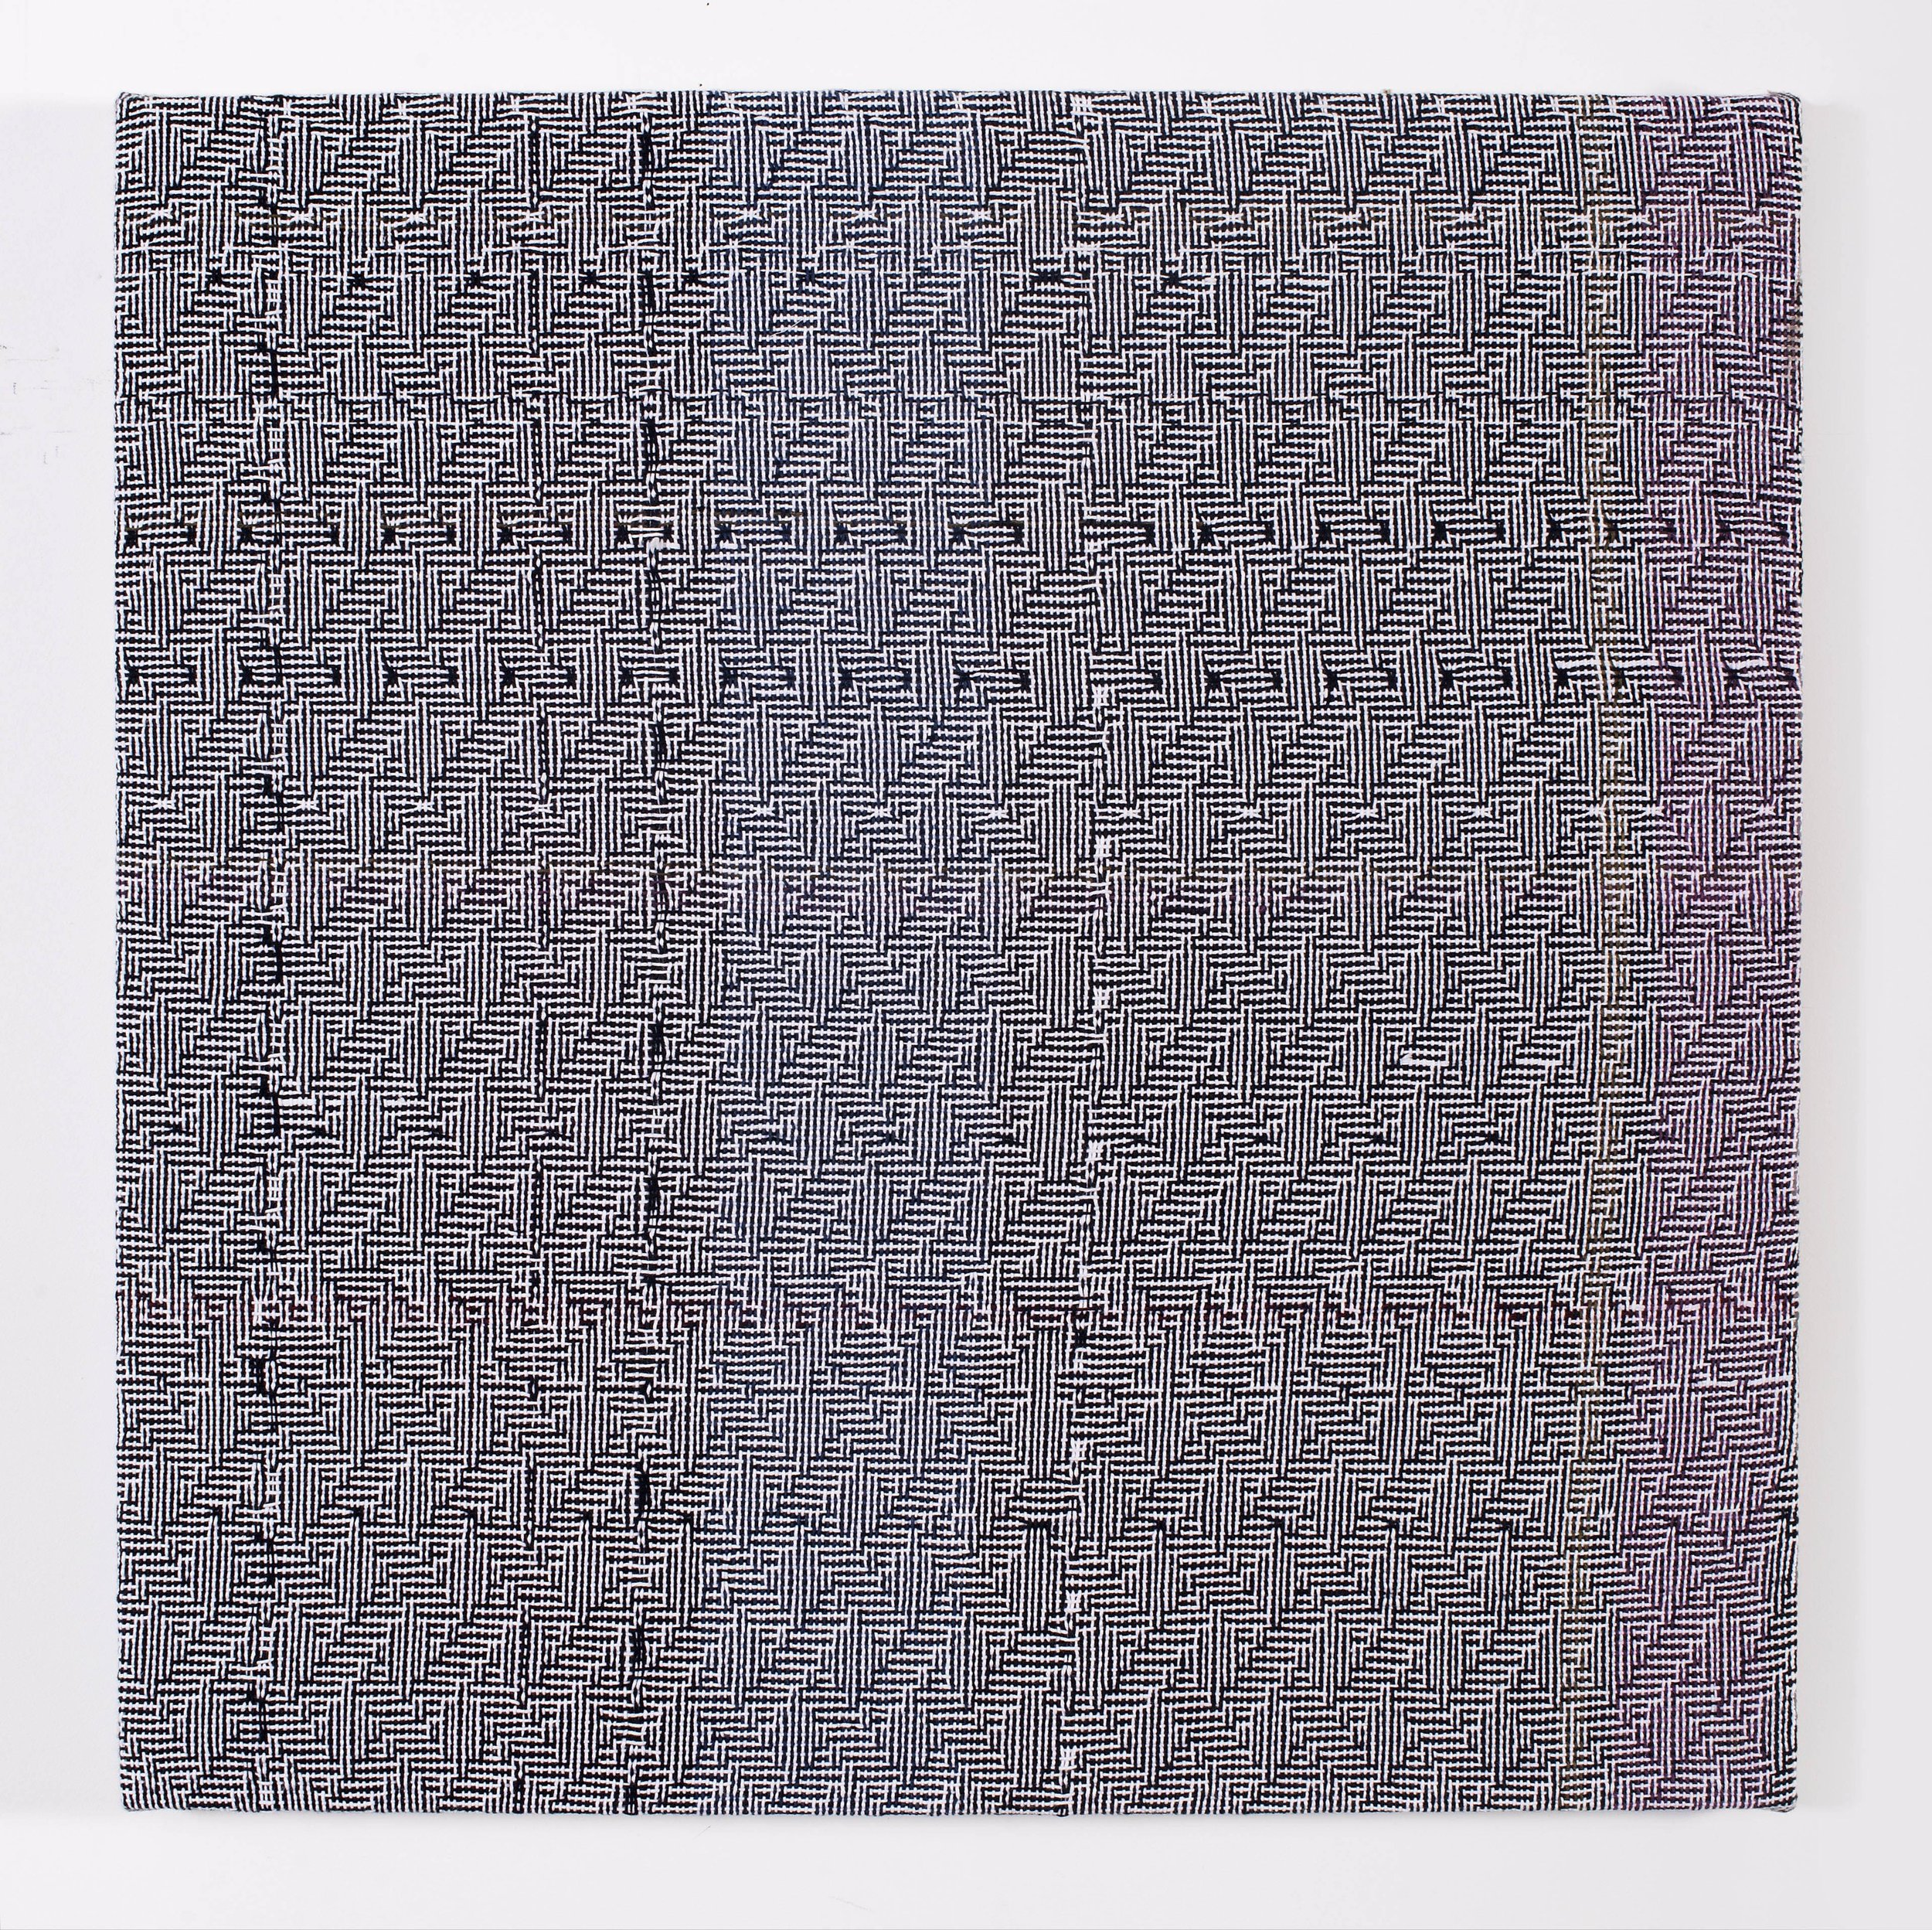 Heather Cook Shadow Weave Black (13) + White (14) 8/4 Cotton 15 EPI, 2015 acrylic on 8/4 cotton yarn and muslin 30 x 29 1/2 in (76,2 x 74,9 cm)